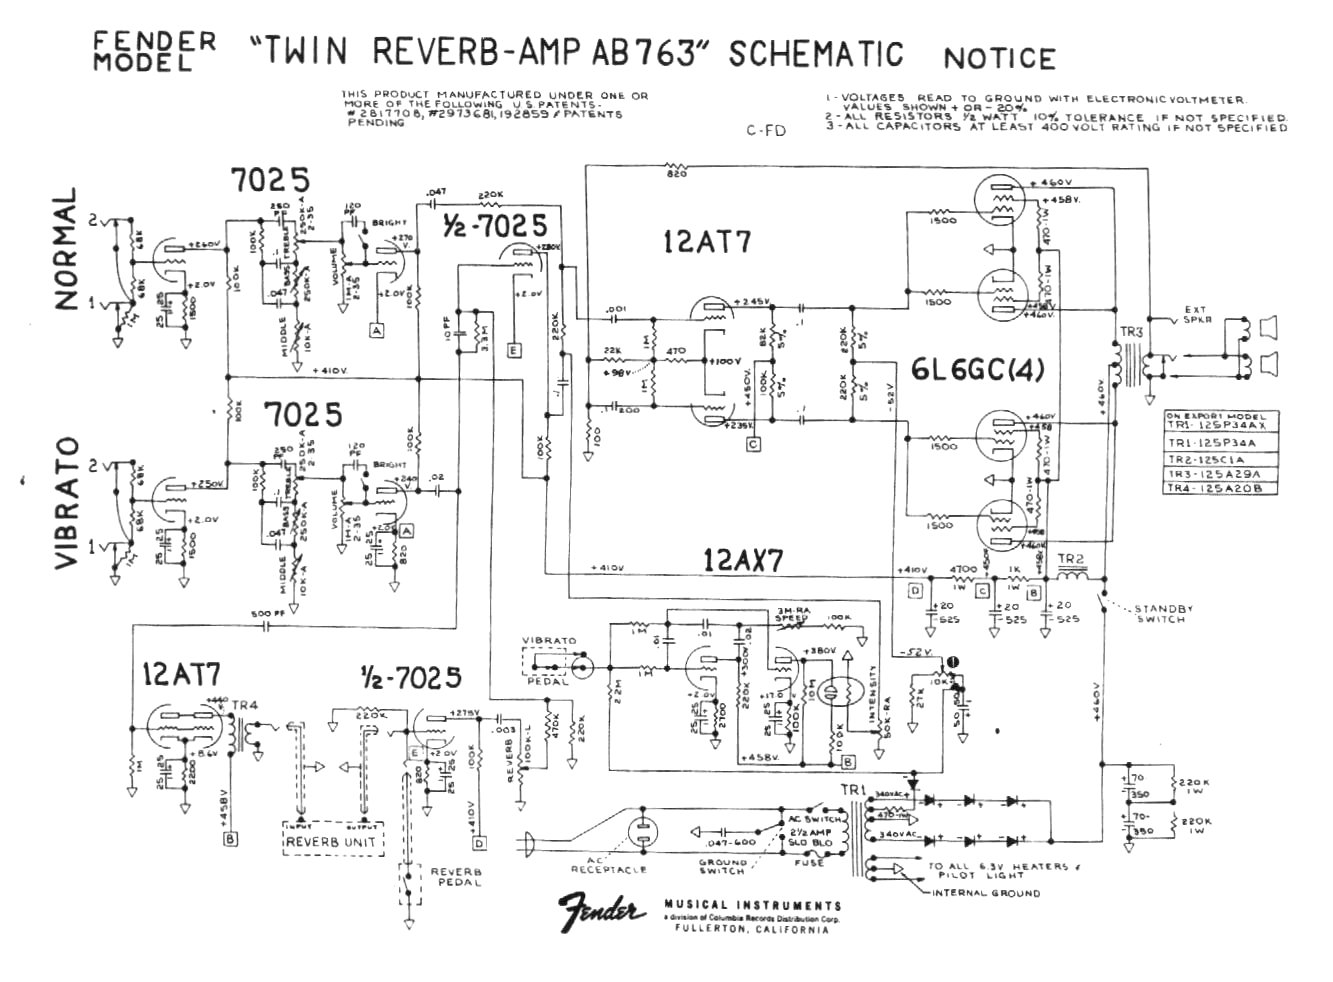 Schematics How To Read A Schematic on